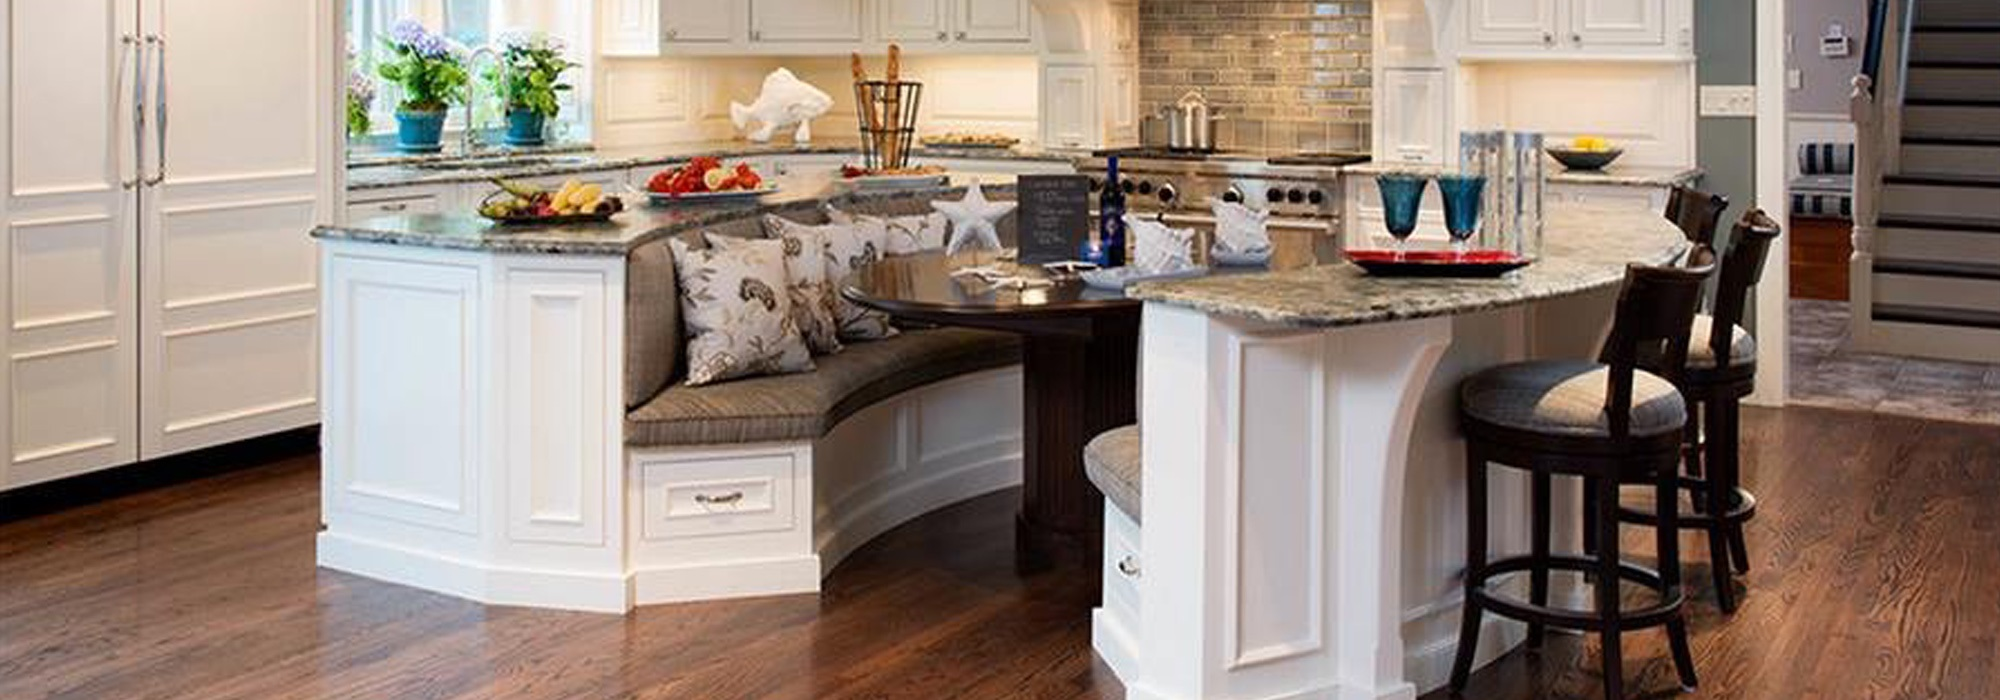 granite kitchens stainless steel kitchen sinks undermount countertops marble farmingdale long island work of prevnext